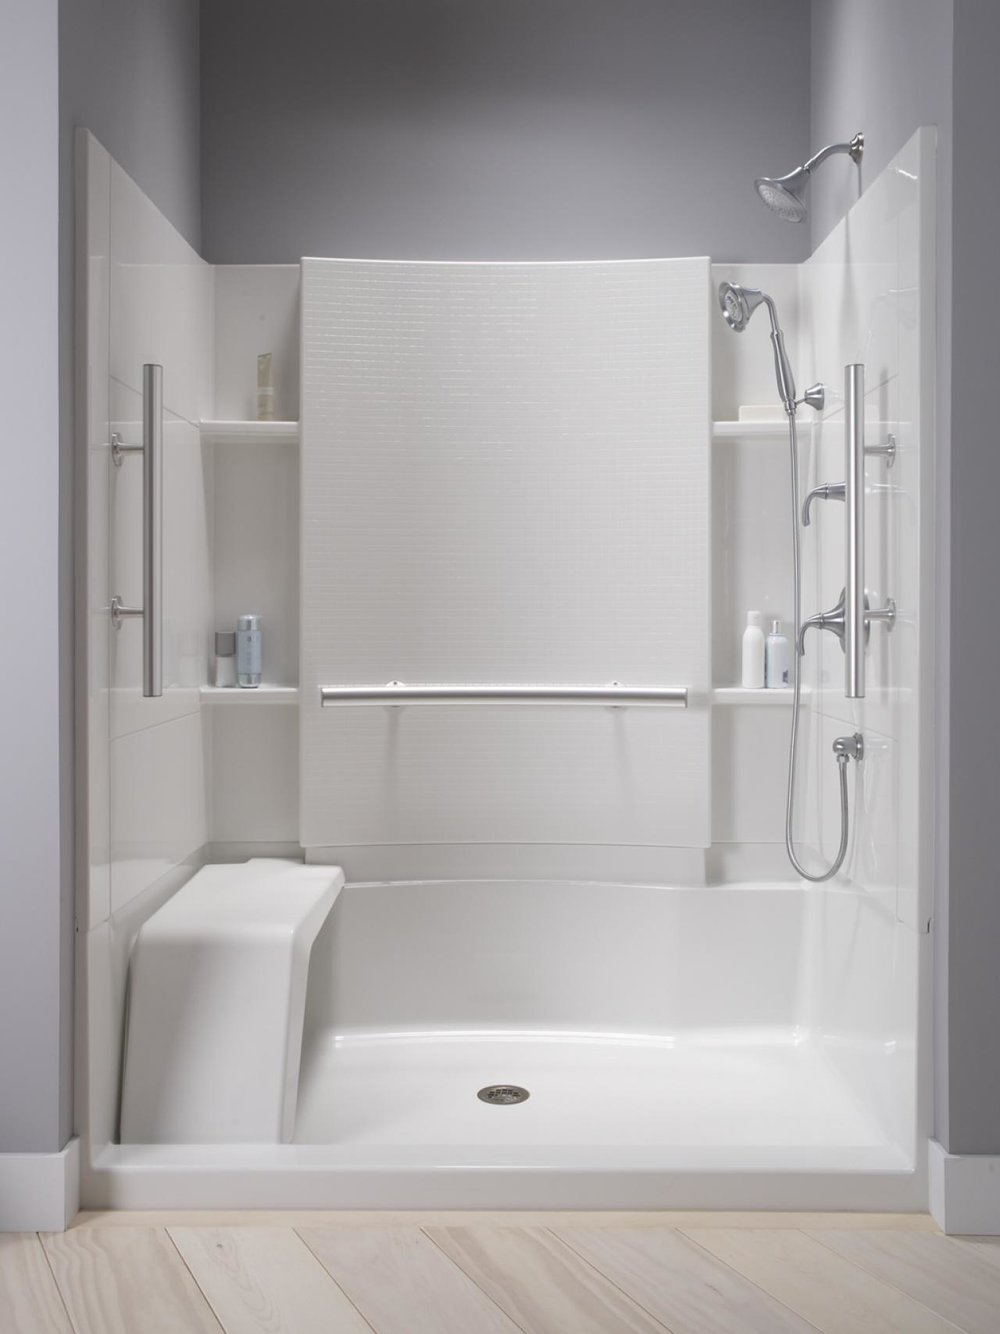 BATHROOM SAFETY — Whitcher Plumbing & Heating